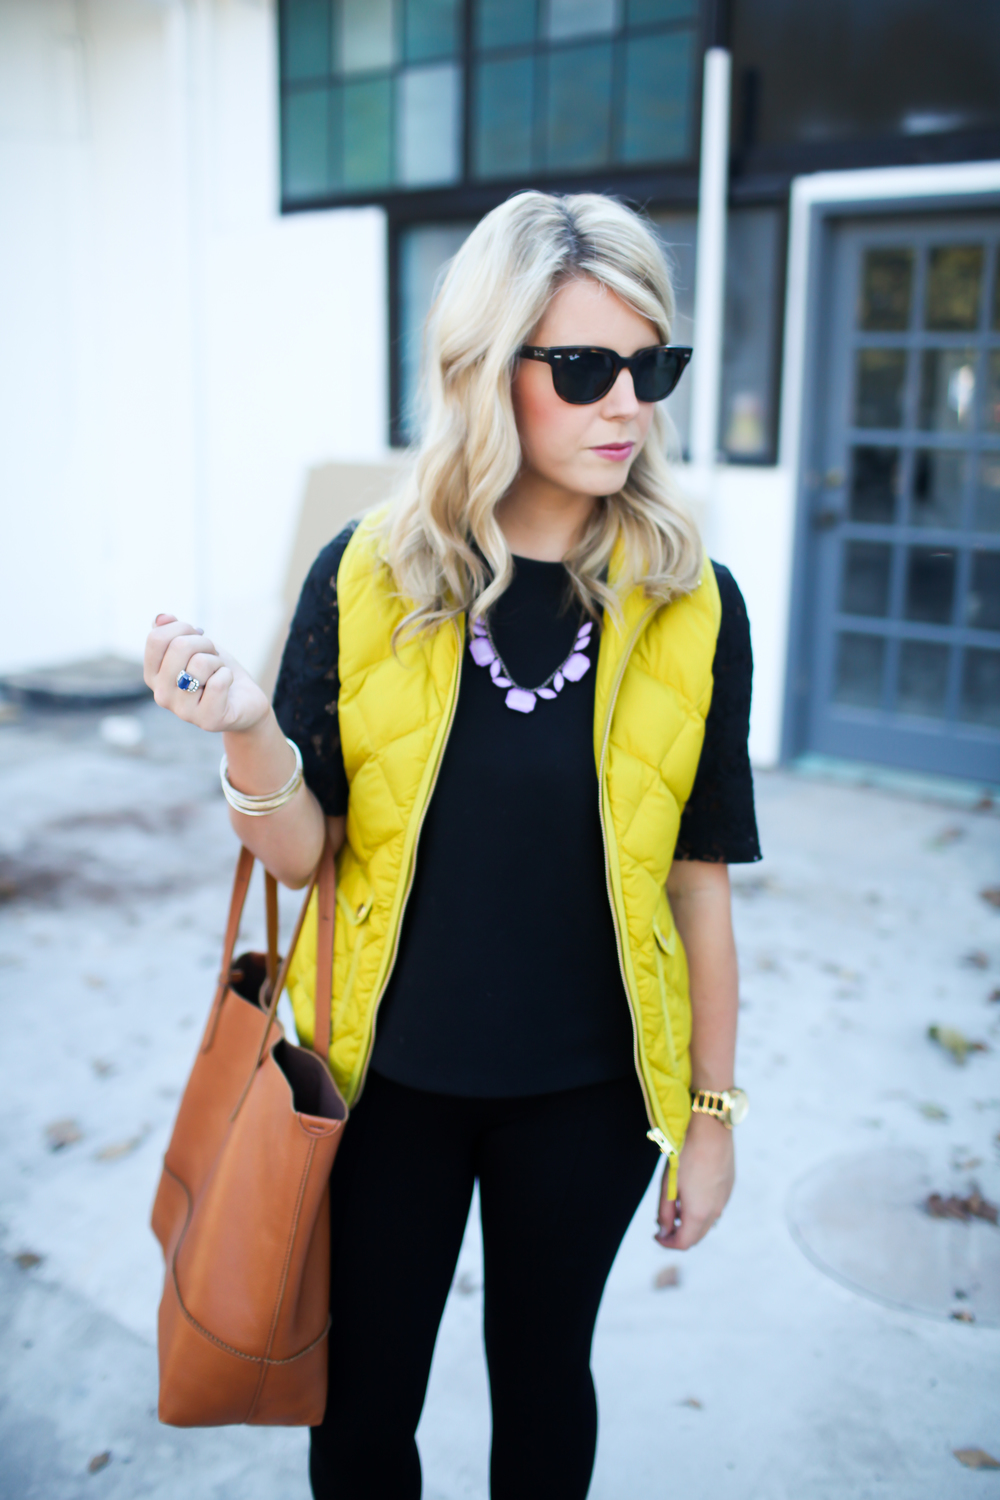 jcrew puffer vest lifestyled atlanta